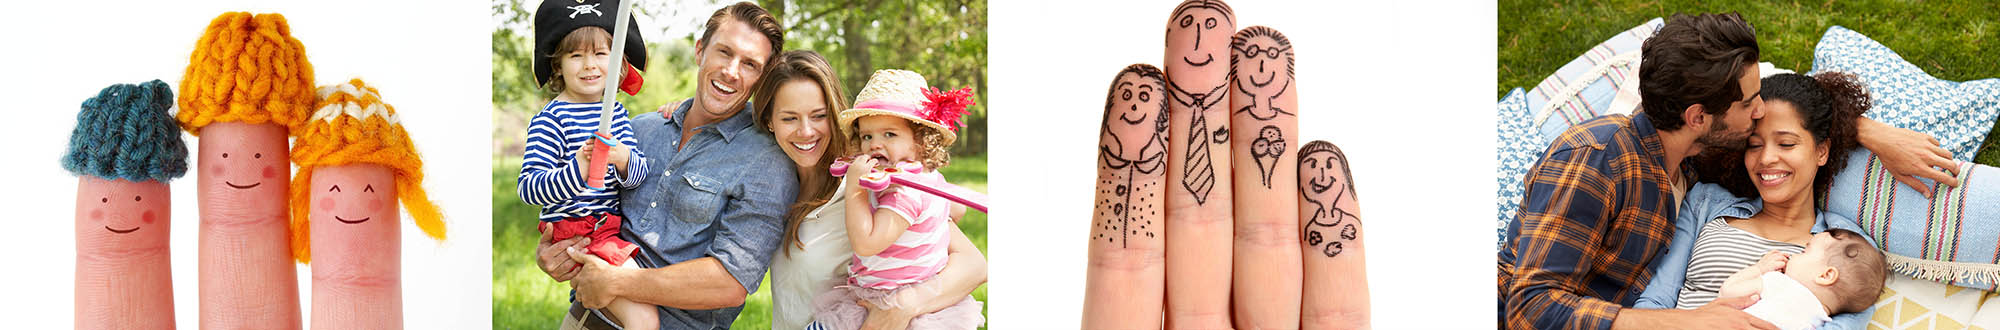 finger puppets faces on hands family overhead fun portrait iphotography